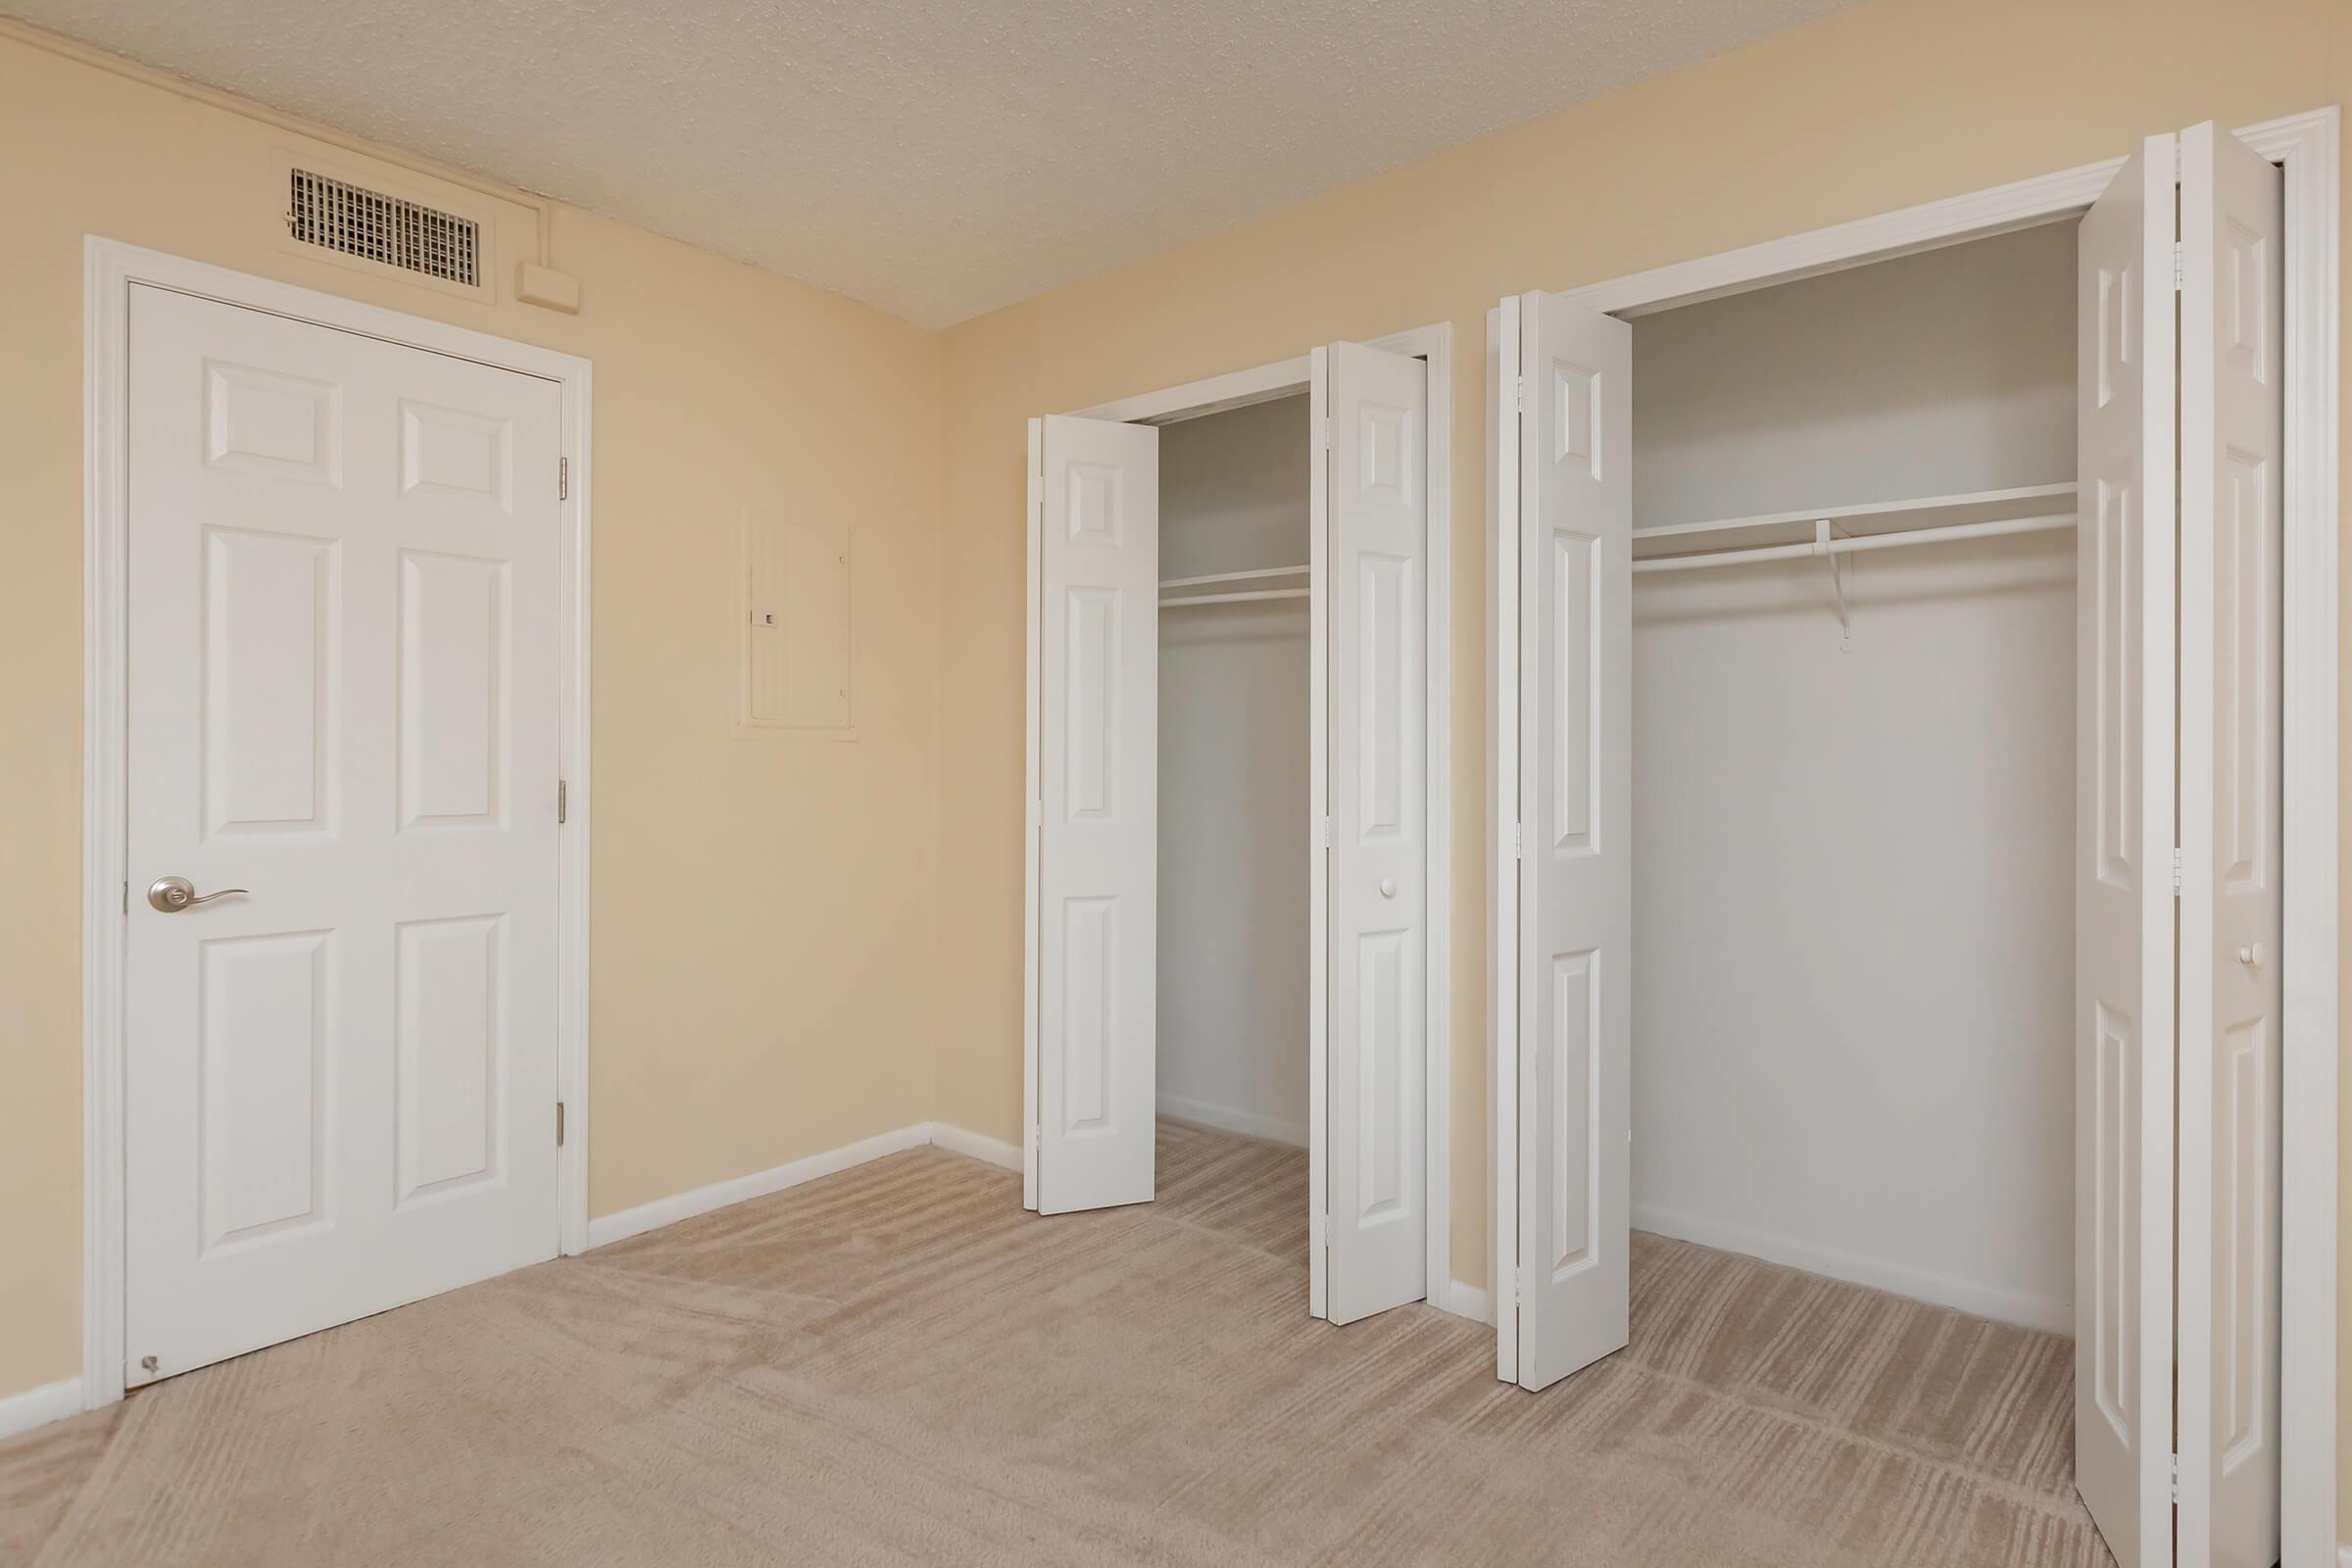 a white door in a room